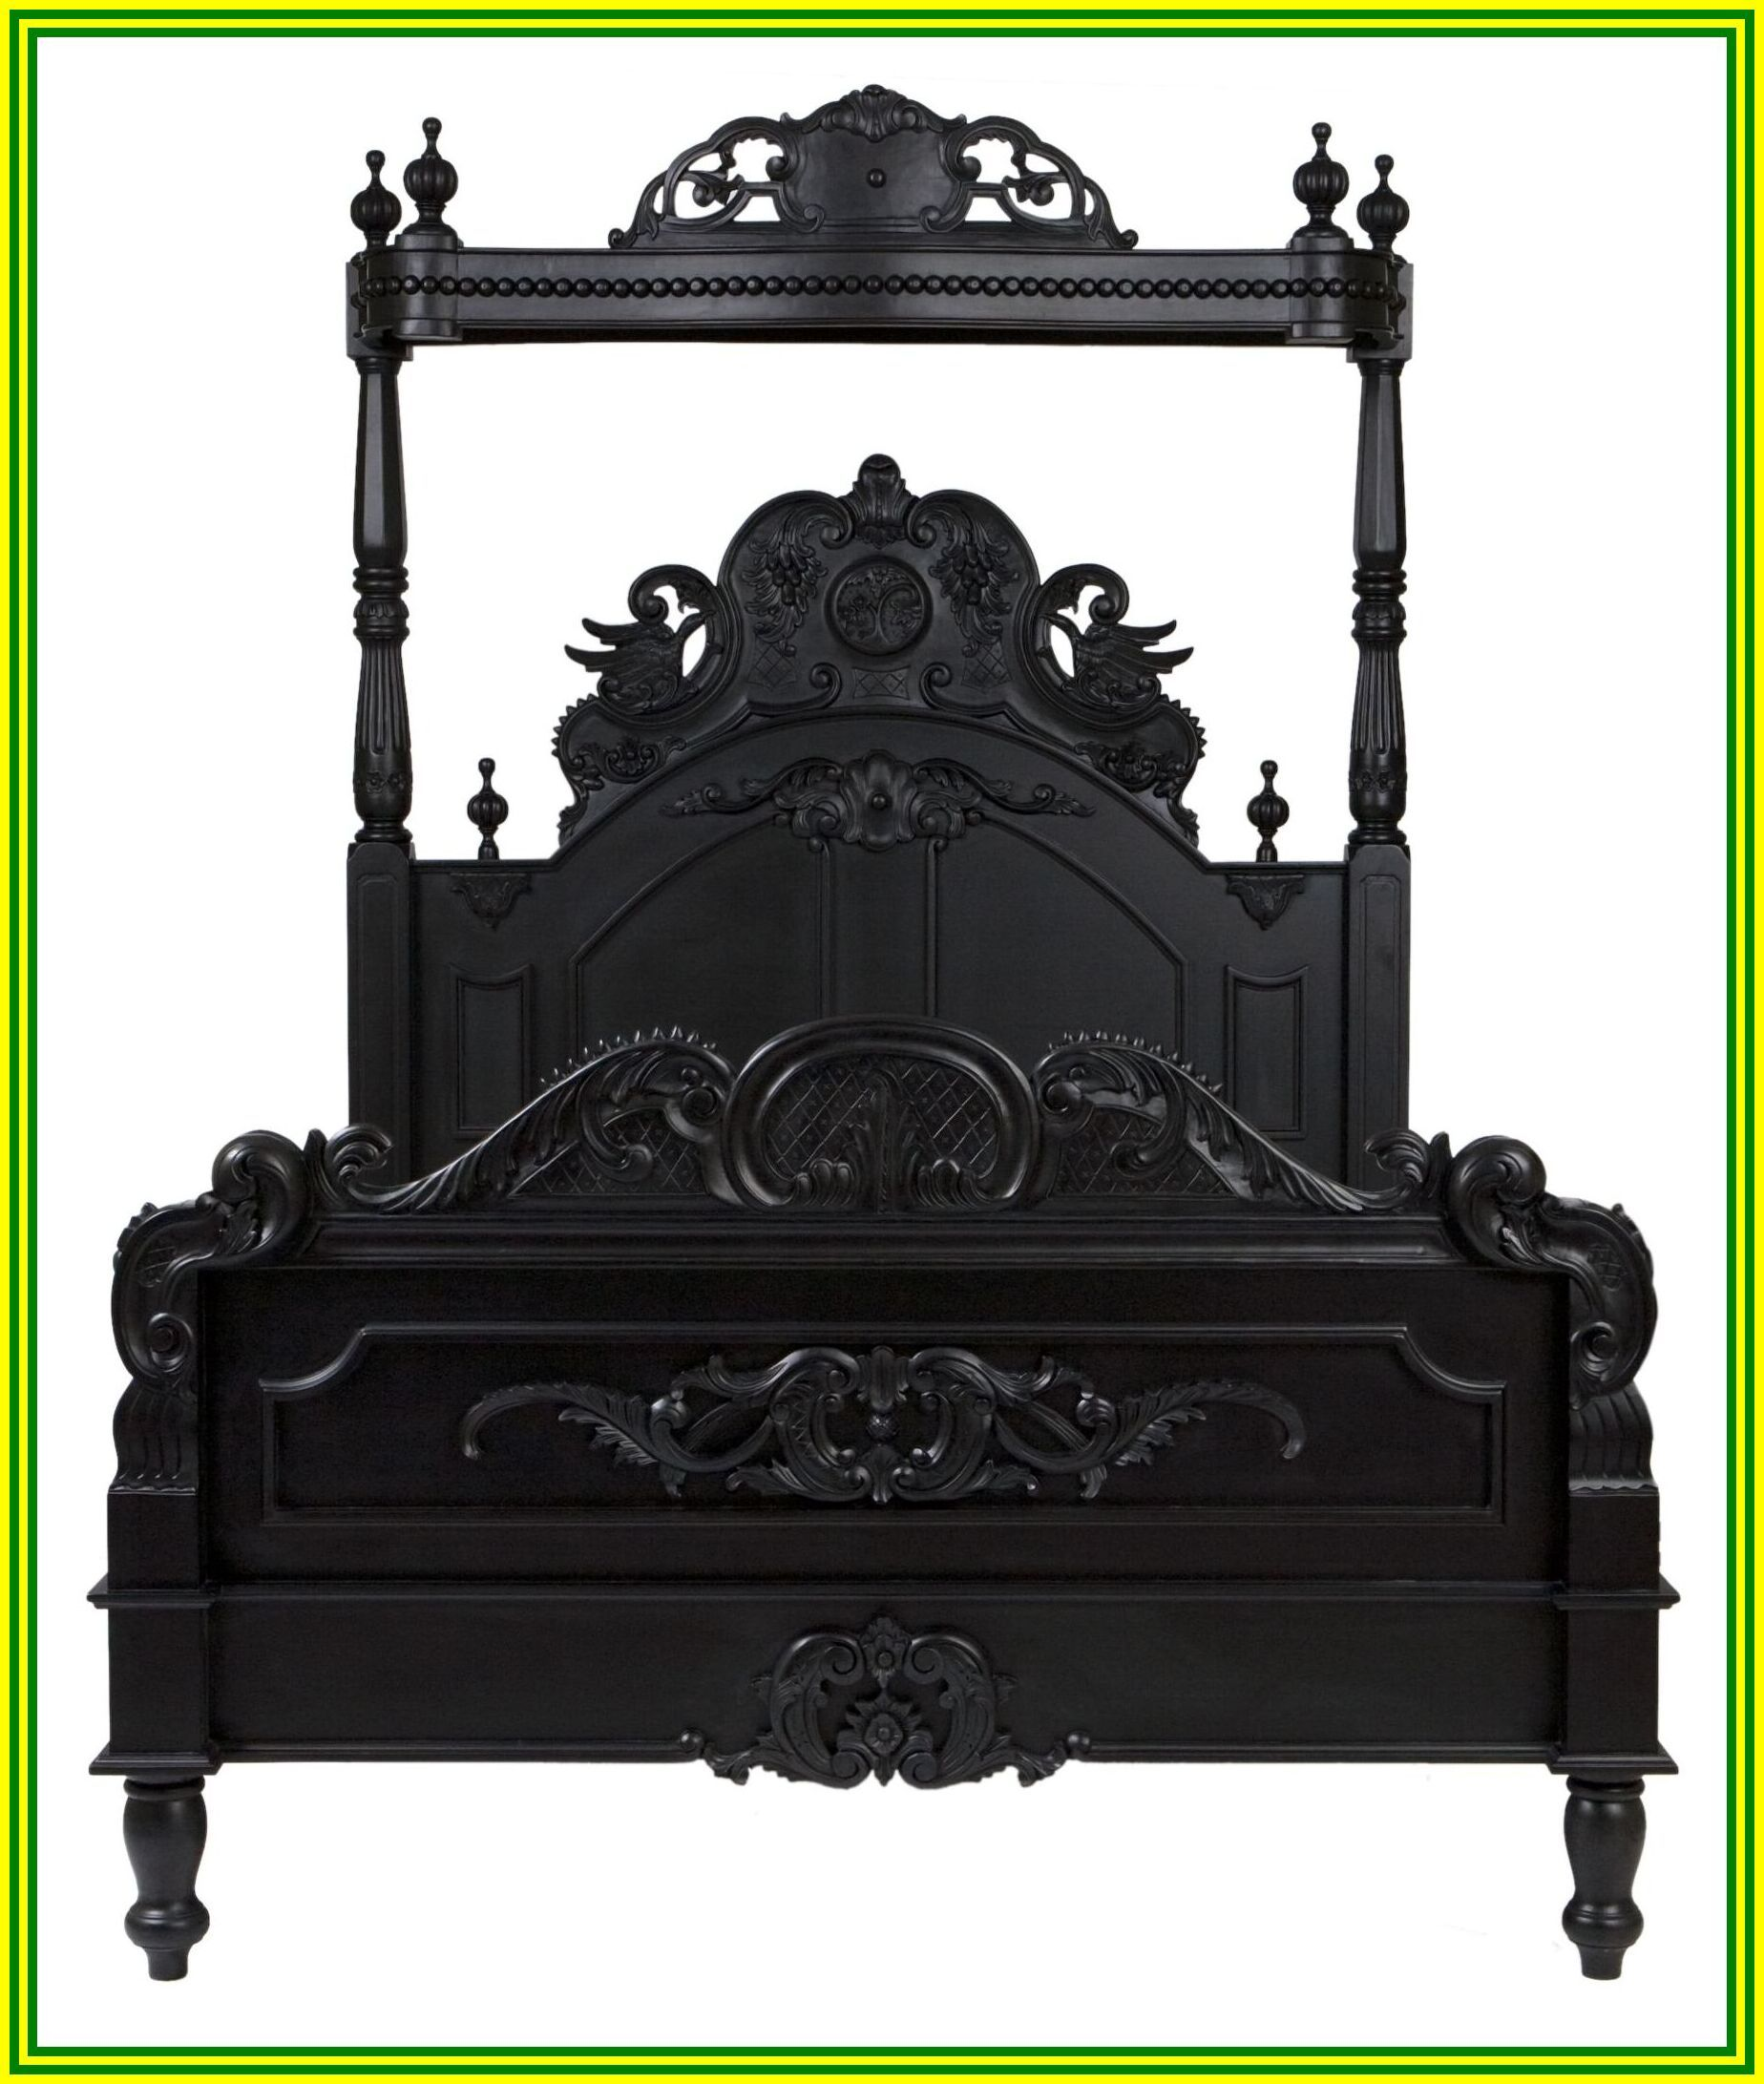 40 Reference Of Black Dresser Victorian Gothic Bedroom Furniture Bedroom Furniture For Sale Bedroom Furnishings